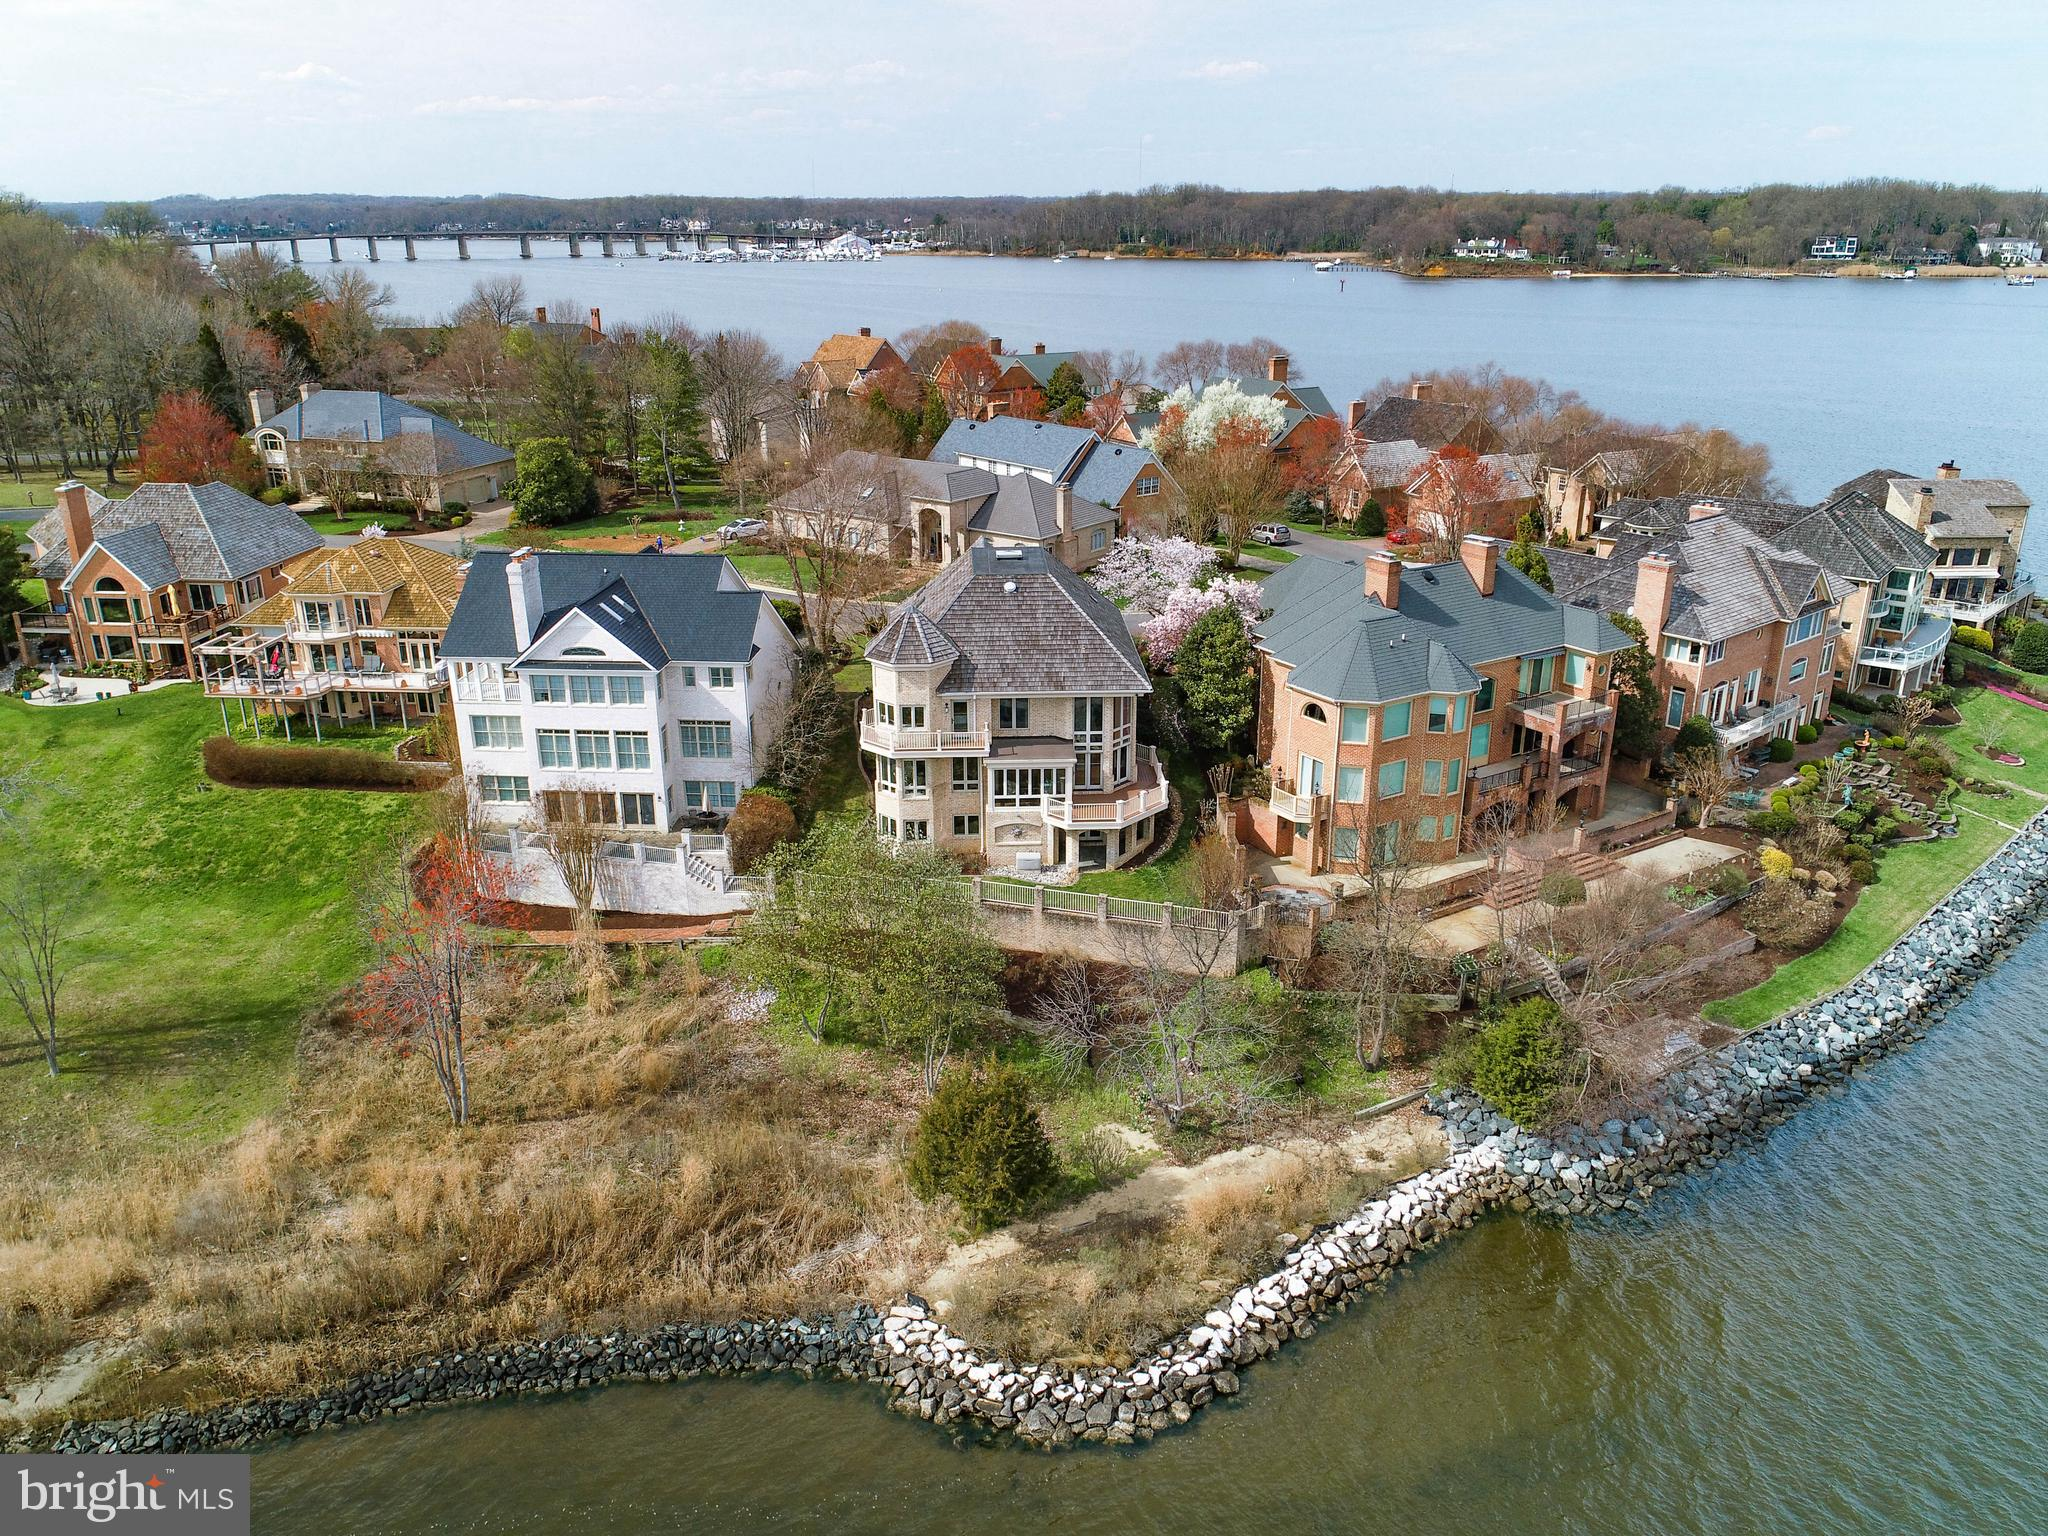 770 SOUTH RIVER LANDING ROAD, EDGEWATER, MD 21037